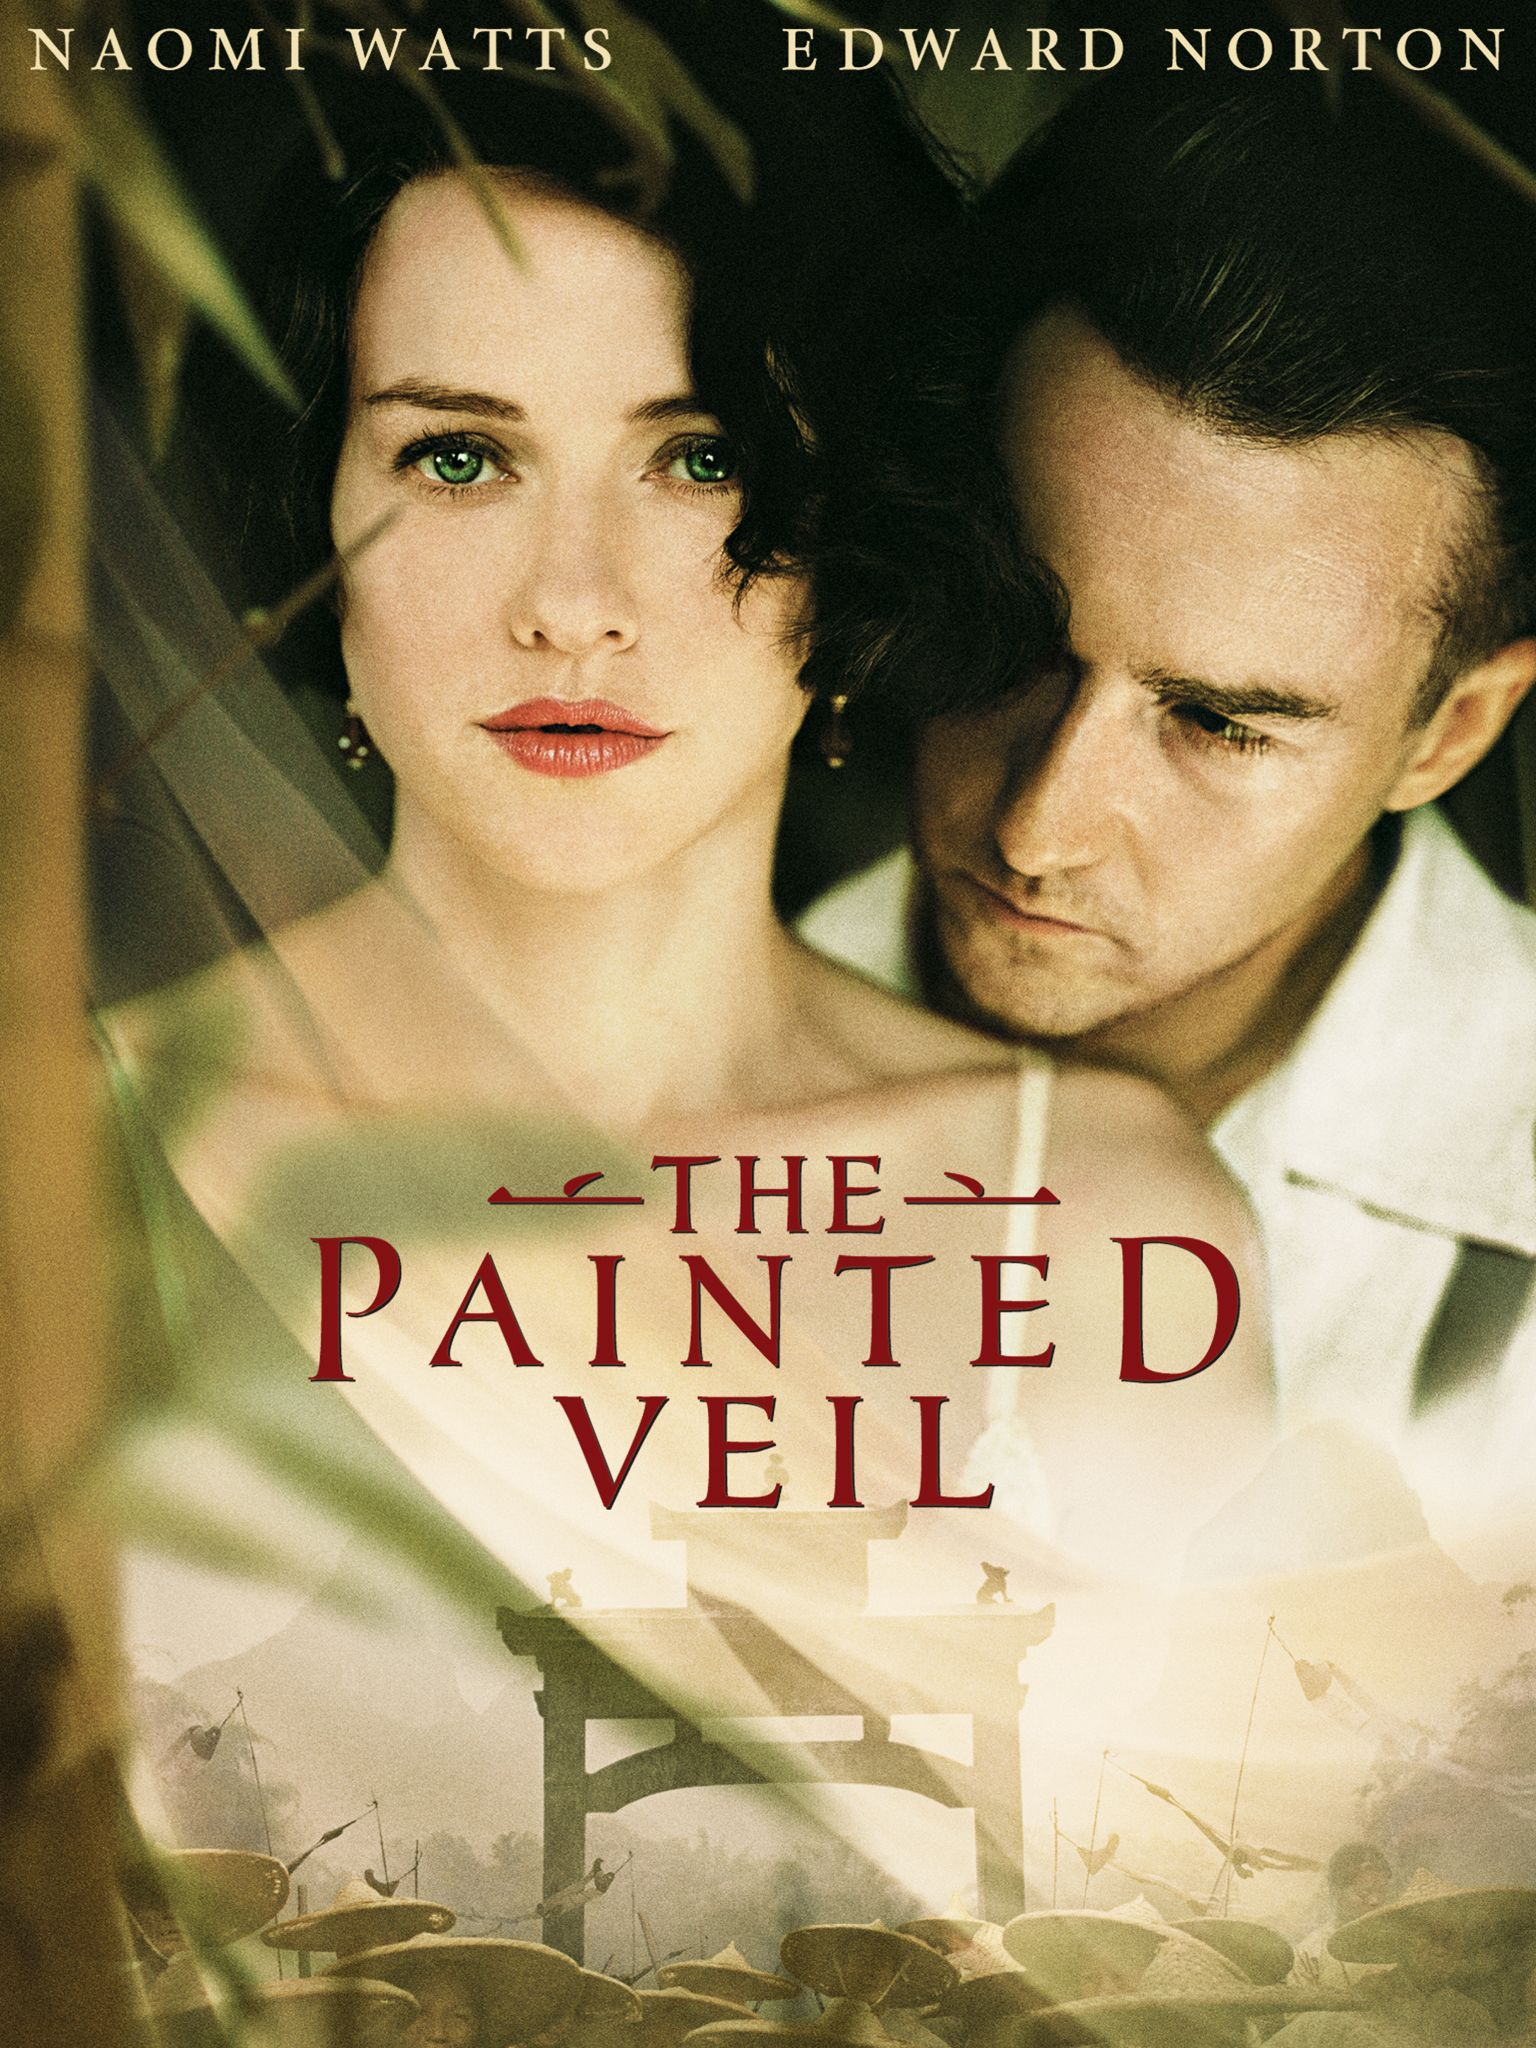 The Painted Veil (2006) - Directed by: John CurranStarring: Naomi Watts, Edward Norton, Liev Schreiber, Toby JonesRated: PG-13 for Some Mature Sexual Situations, Partial Nudity, Disturbing Images and Brief Drug ContentRunning Time: 2 h 5 mTMM Score: 3.5 stars out of 5STRENGTHS: Acting, Locations, Soundtrack, WritingWEAKNESSES: Melodramatic Moments, Somewhat Predictable, Low-Key White Savior Complex